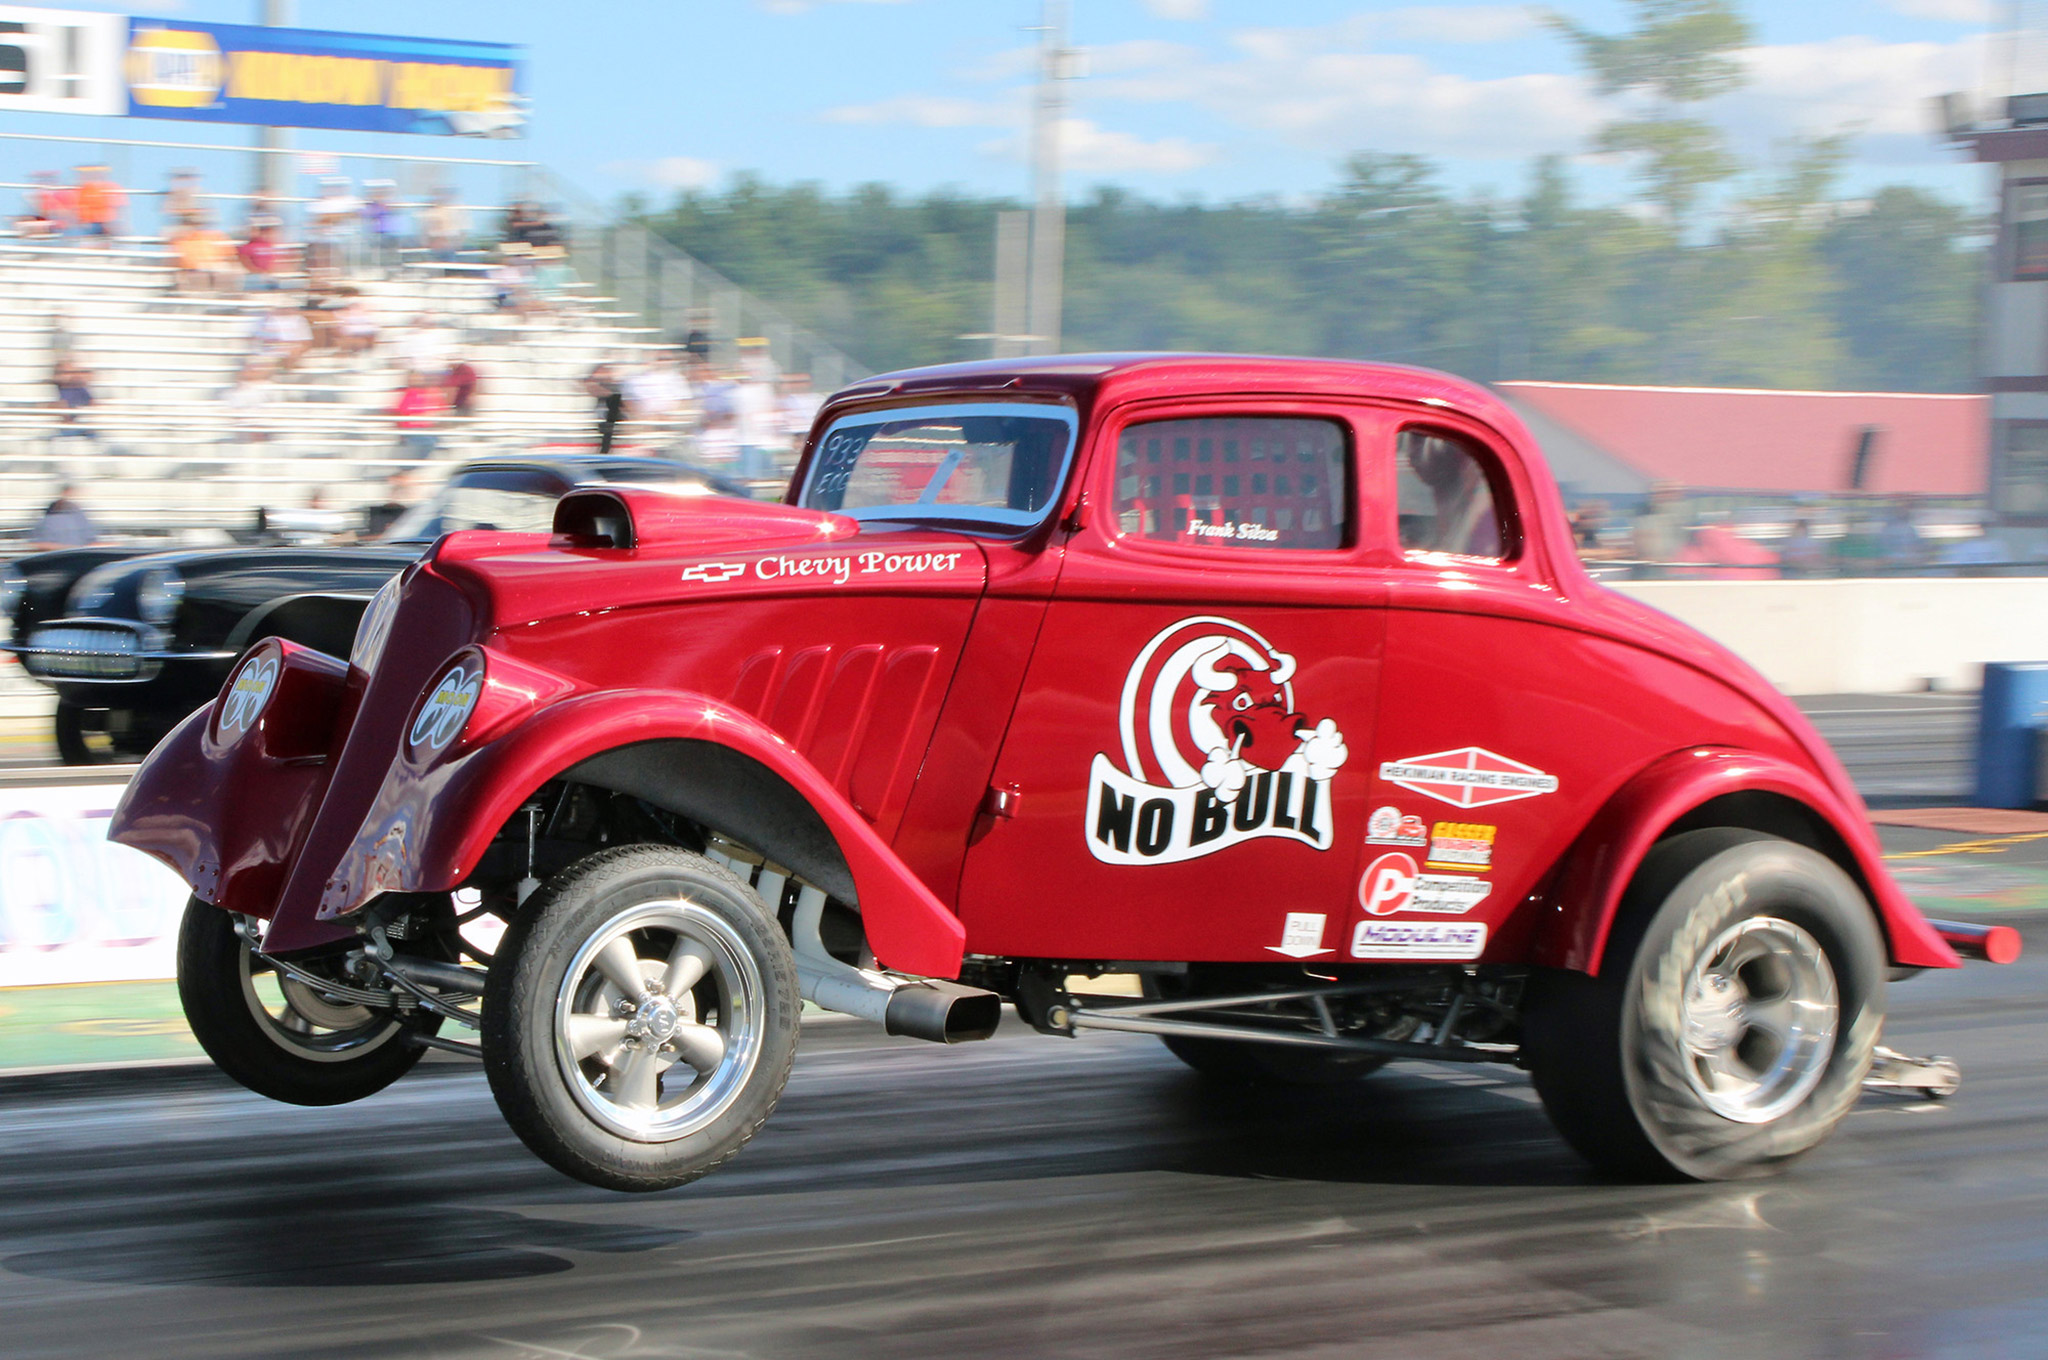 Frank Silva won the Gasser class with an off-the-throttle 10.261 at just 104.62 mph in this Chevy-powered Willys after his opponent redlighted in the finals.